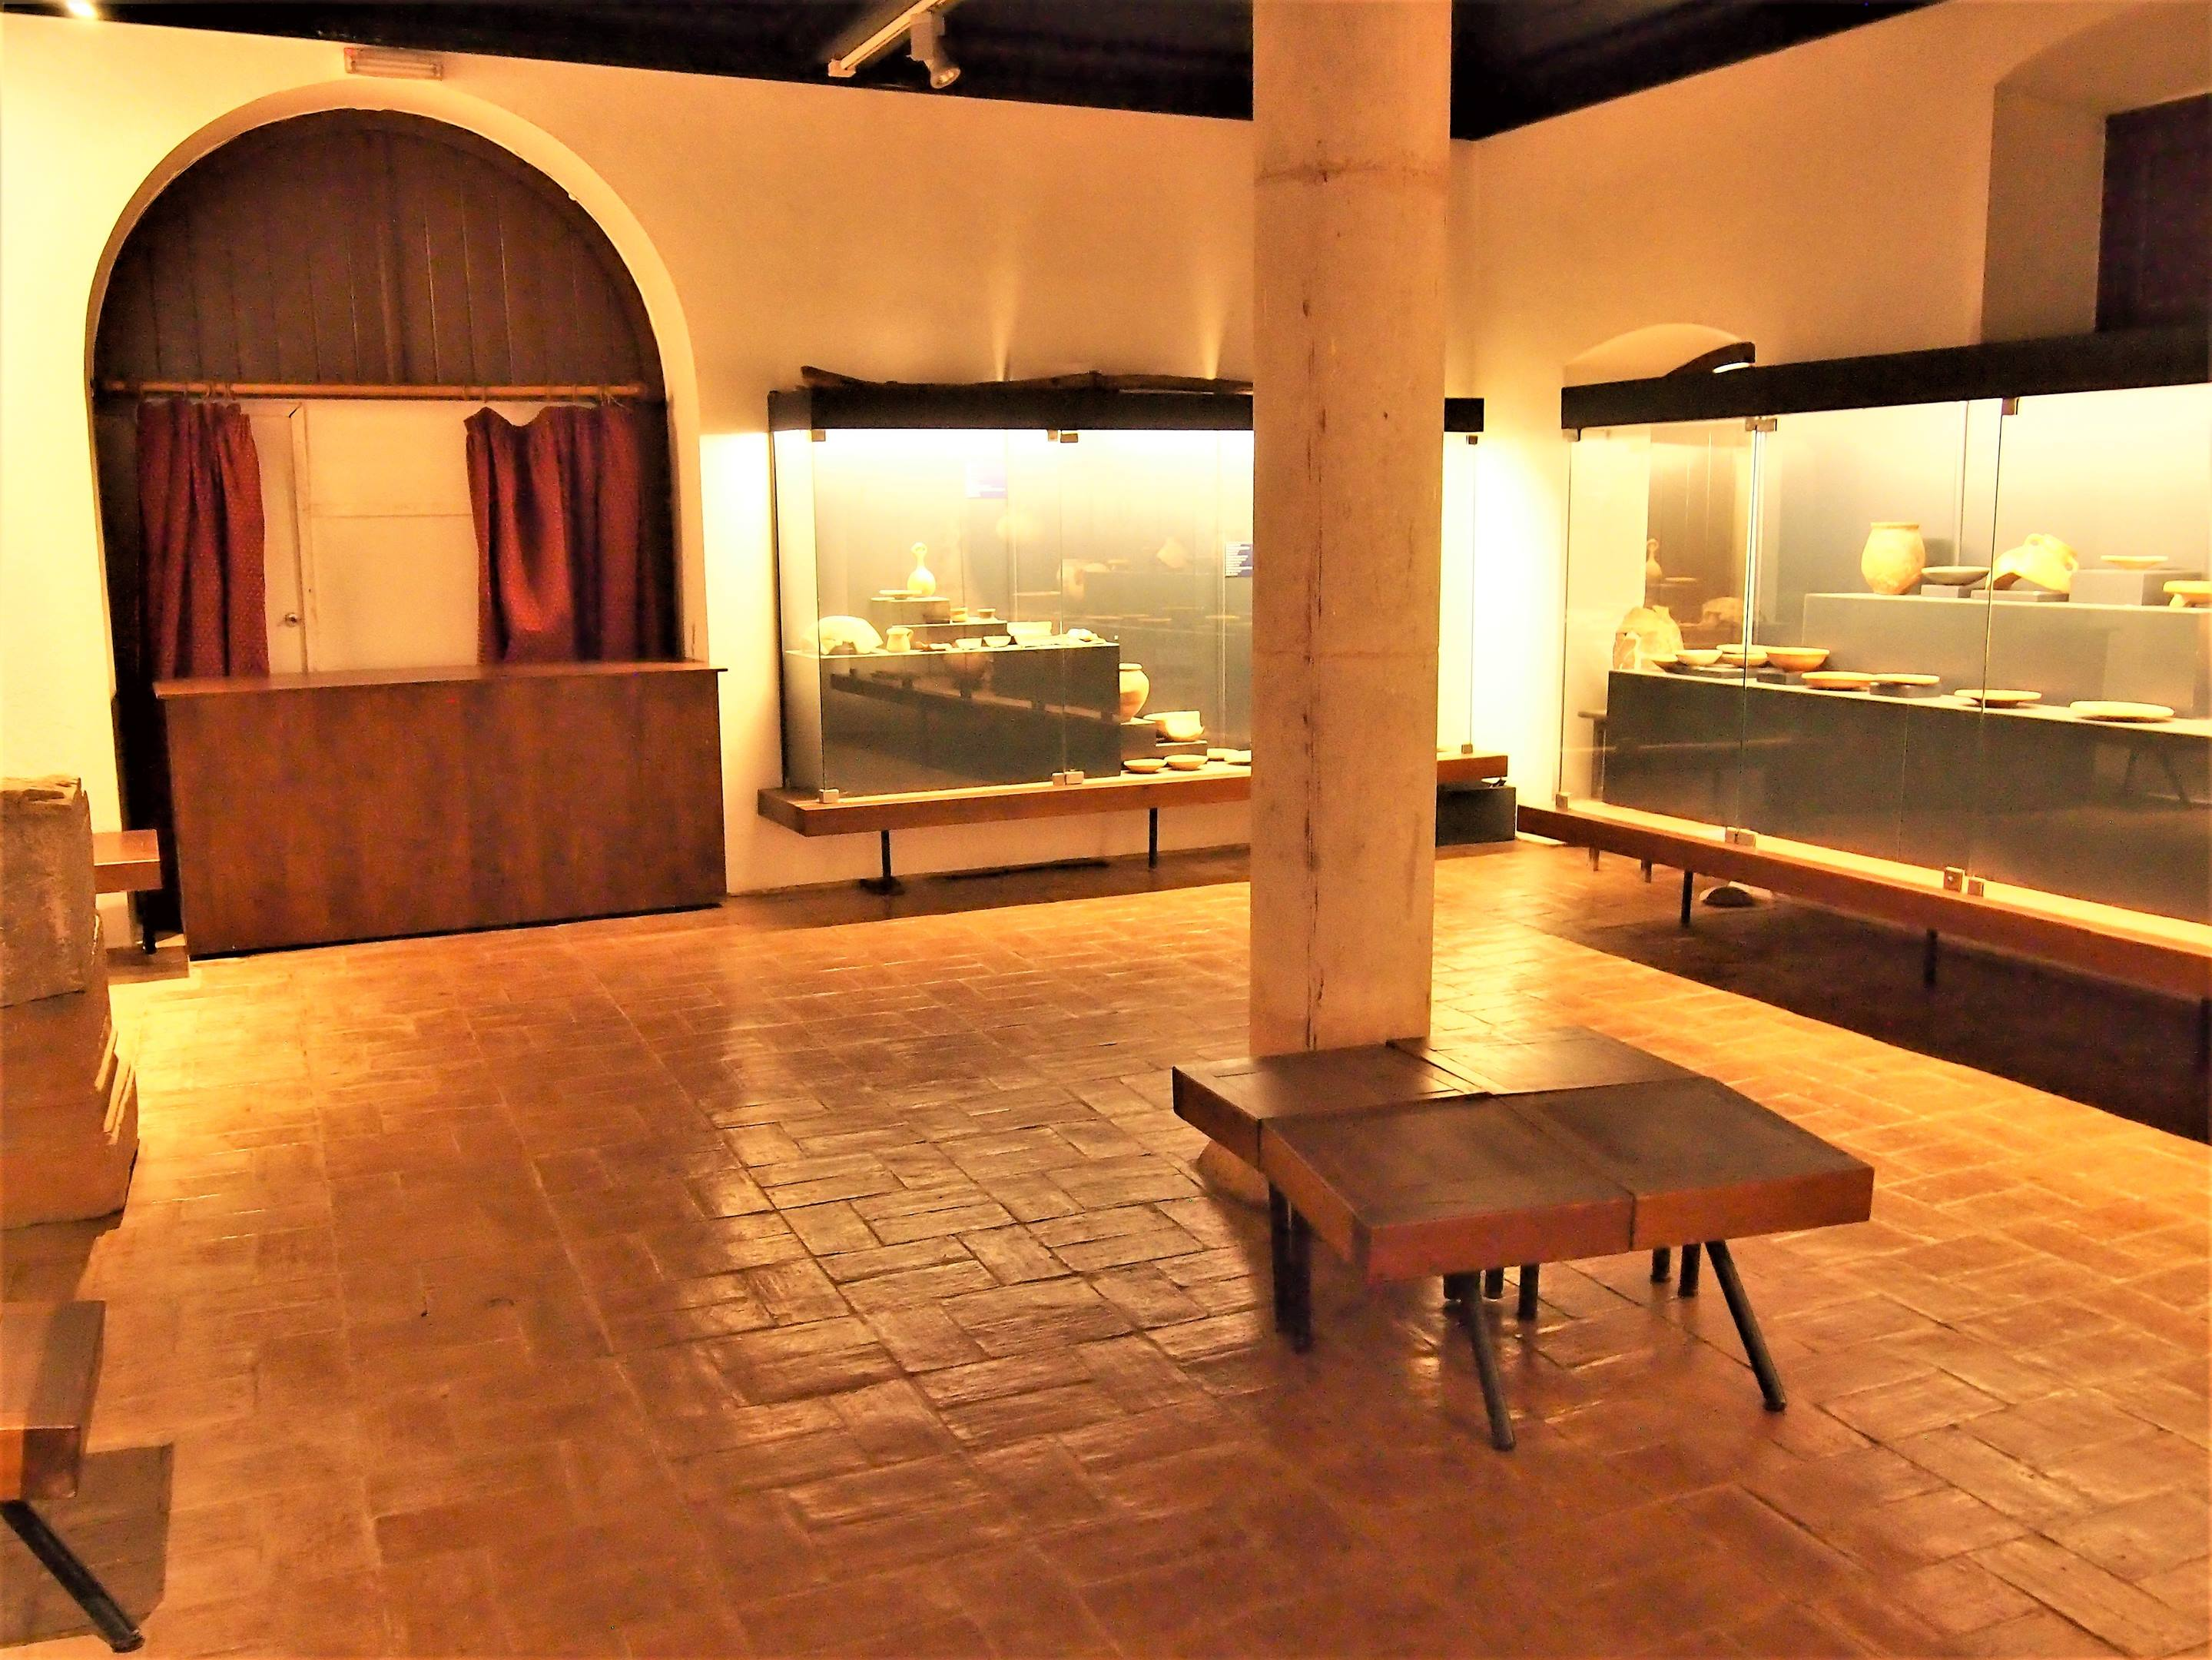 The archaeological museum within the Castro Marim castle